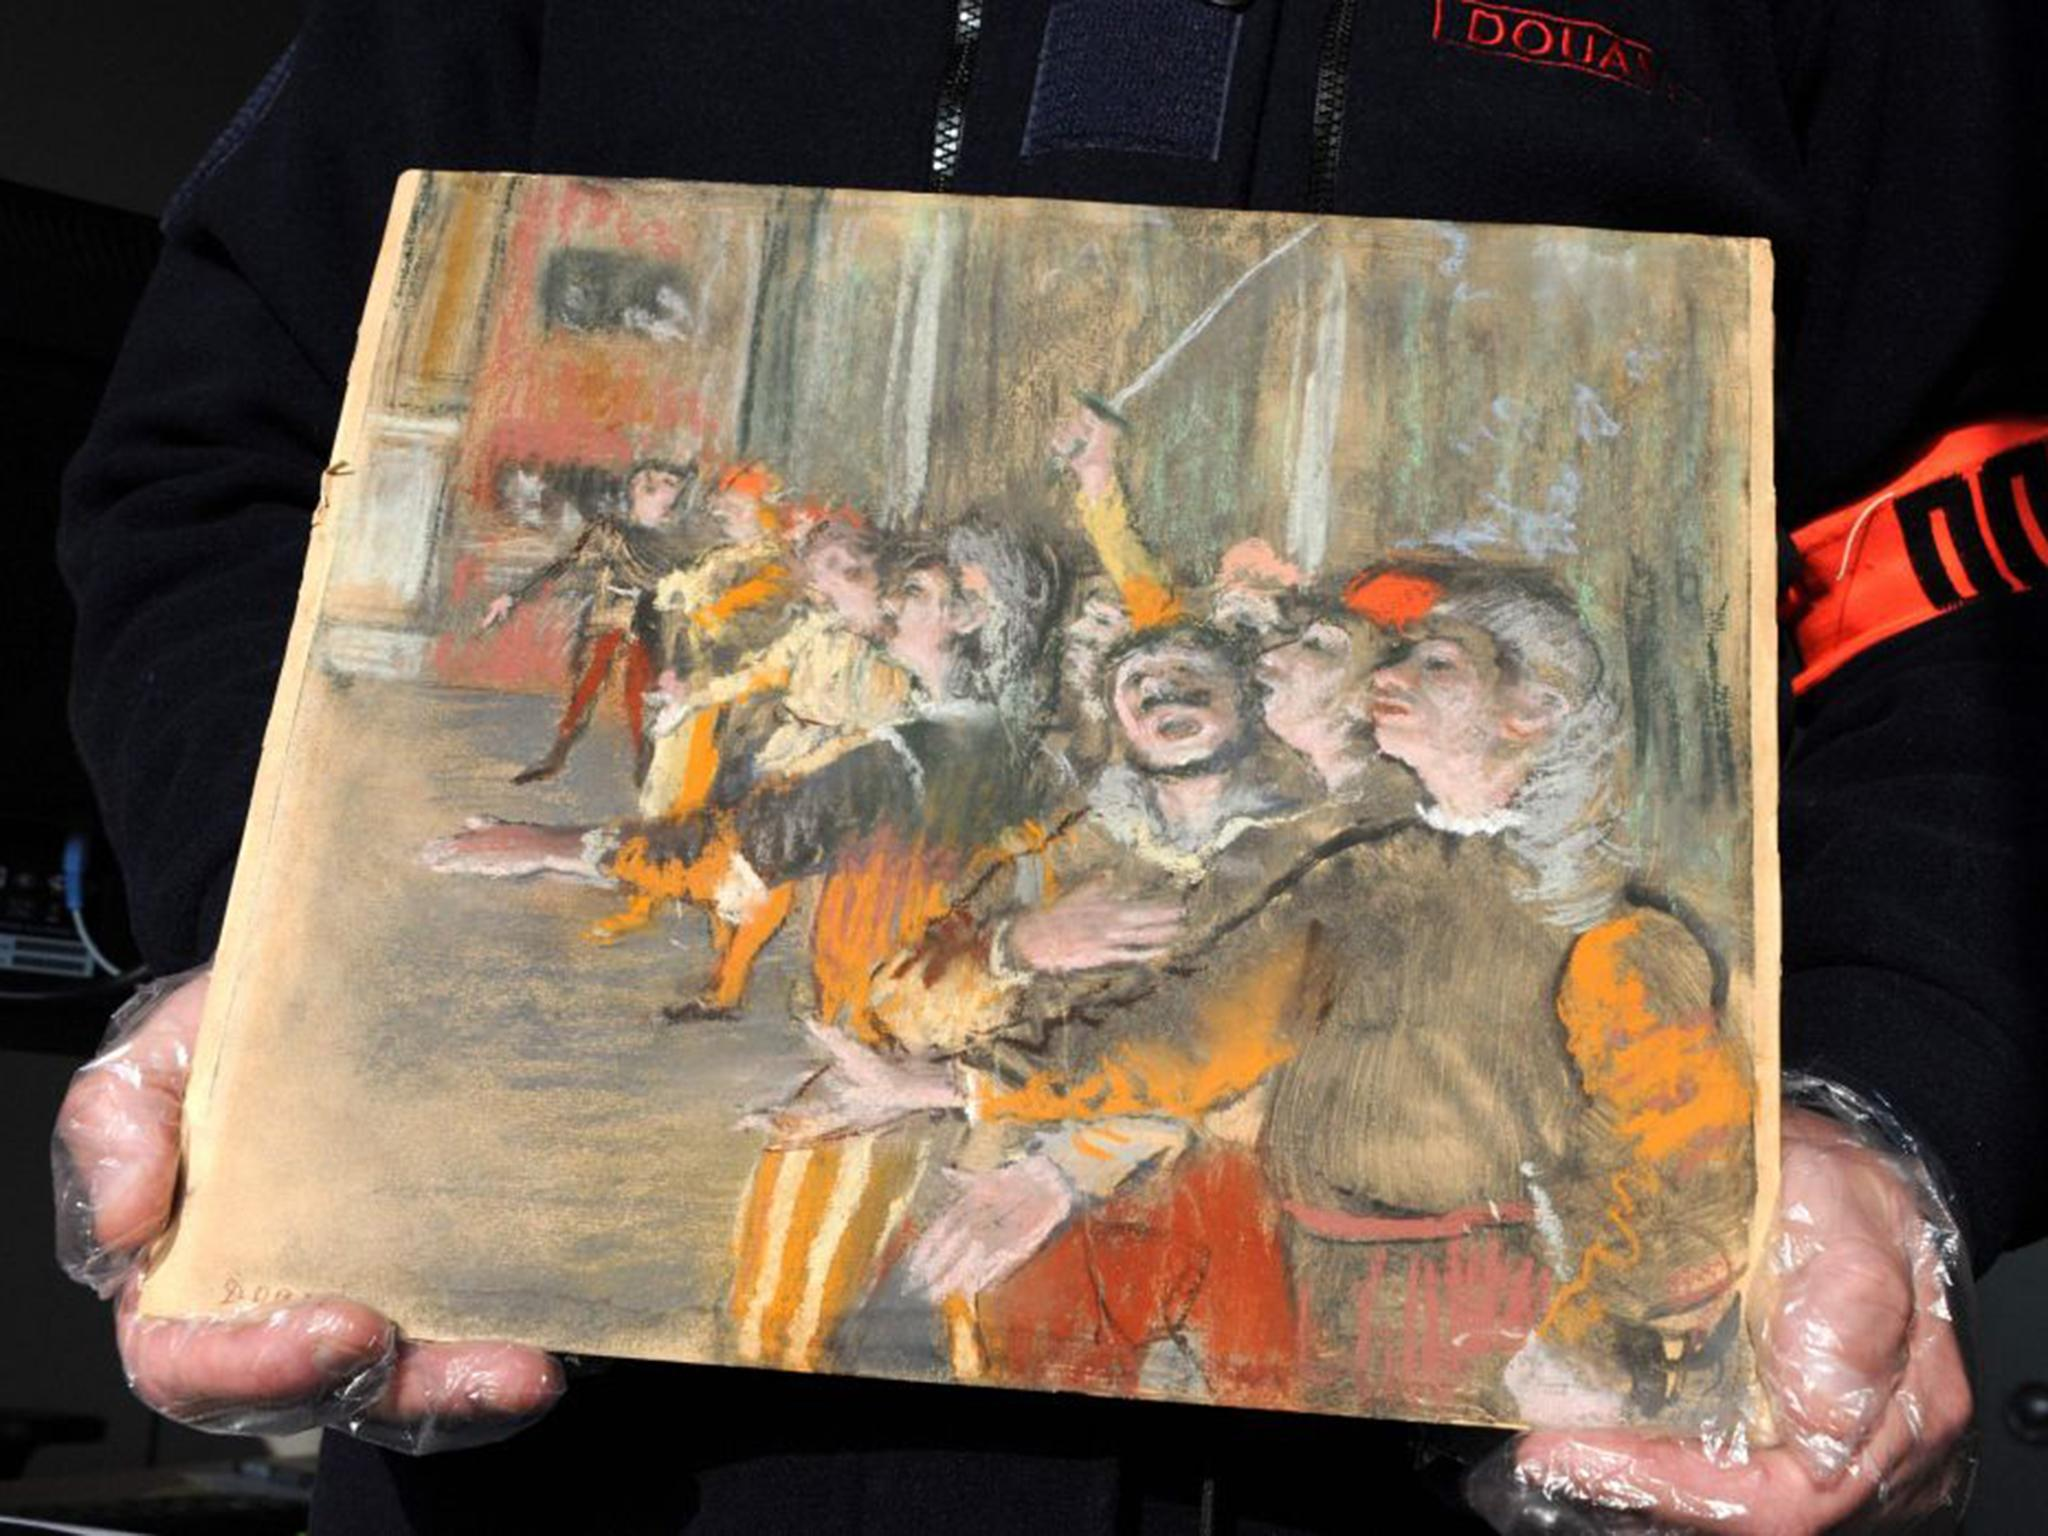 Stolen edgar degas painting worth £700000 found on a bus